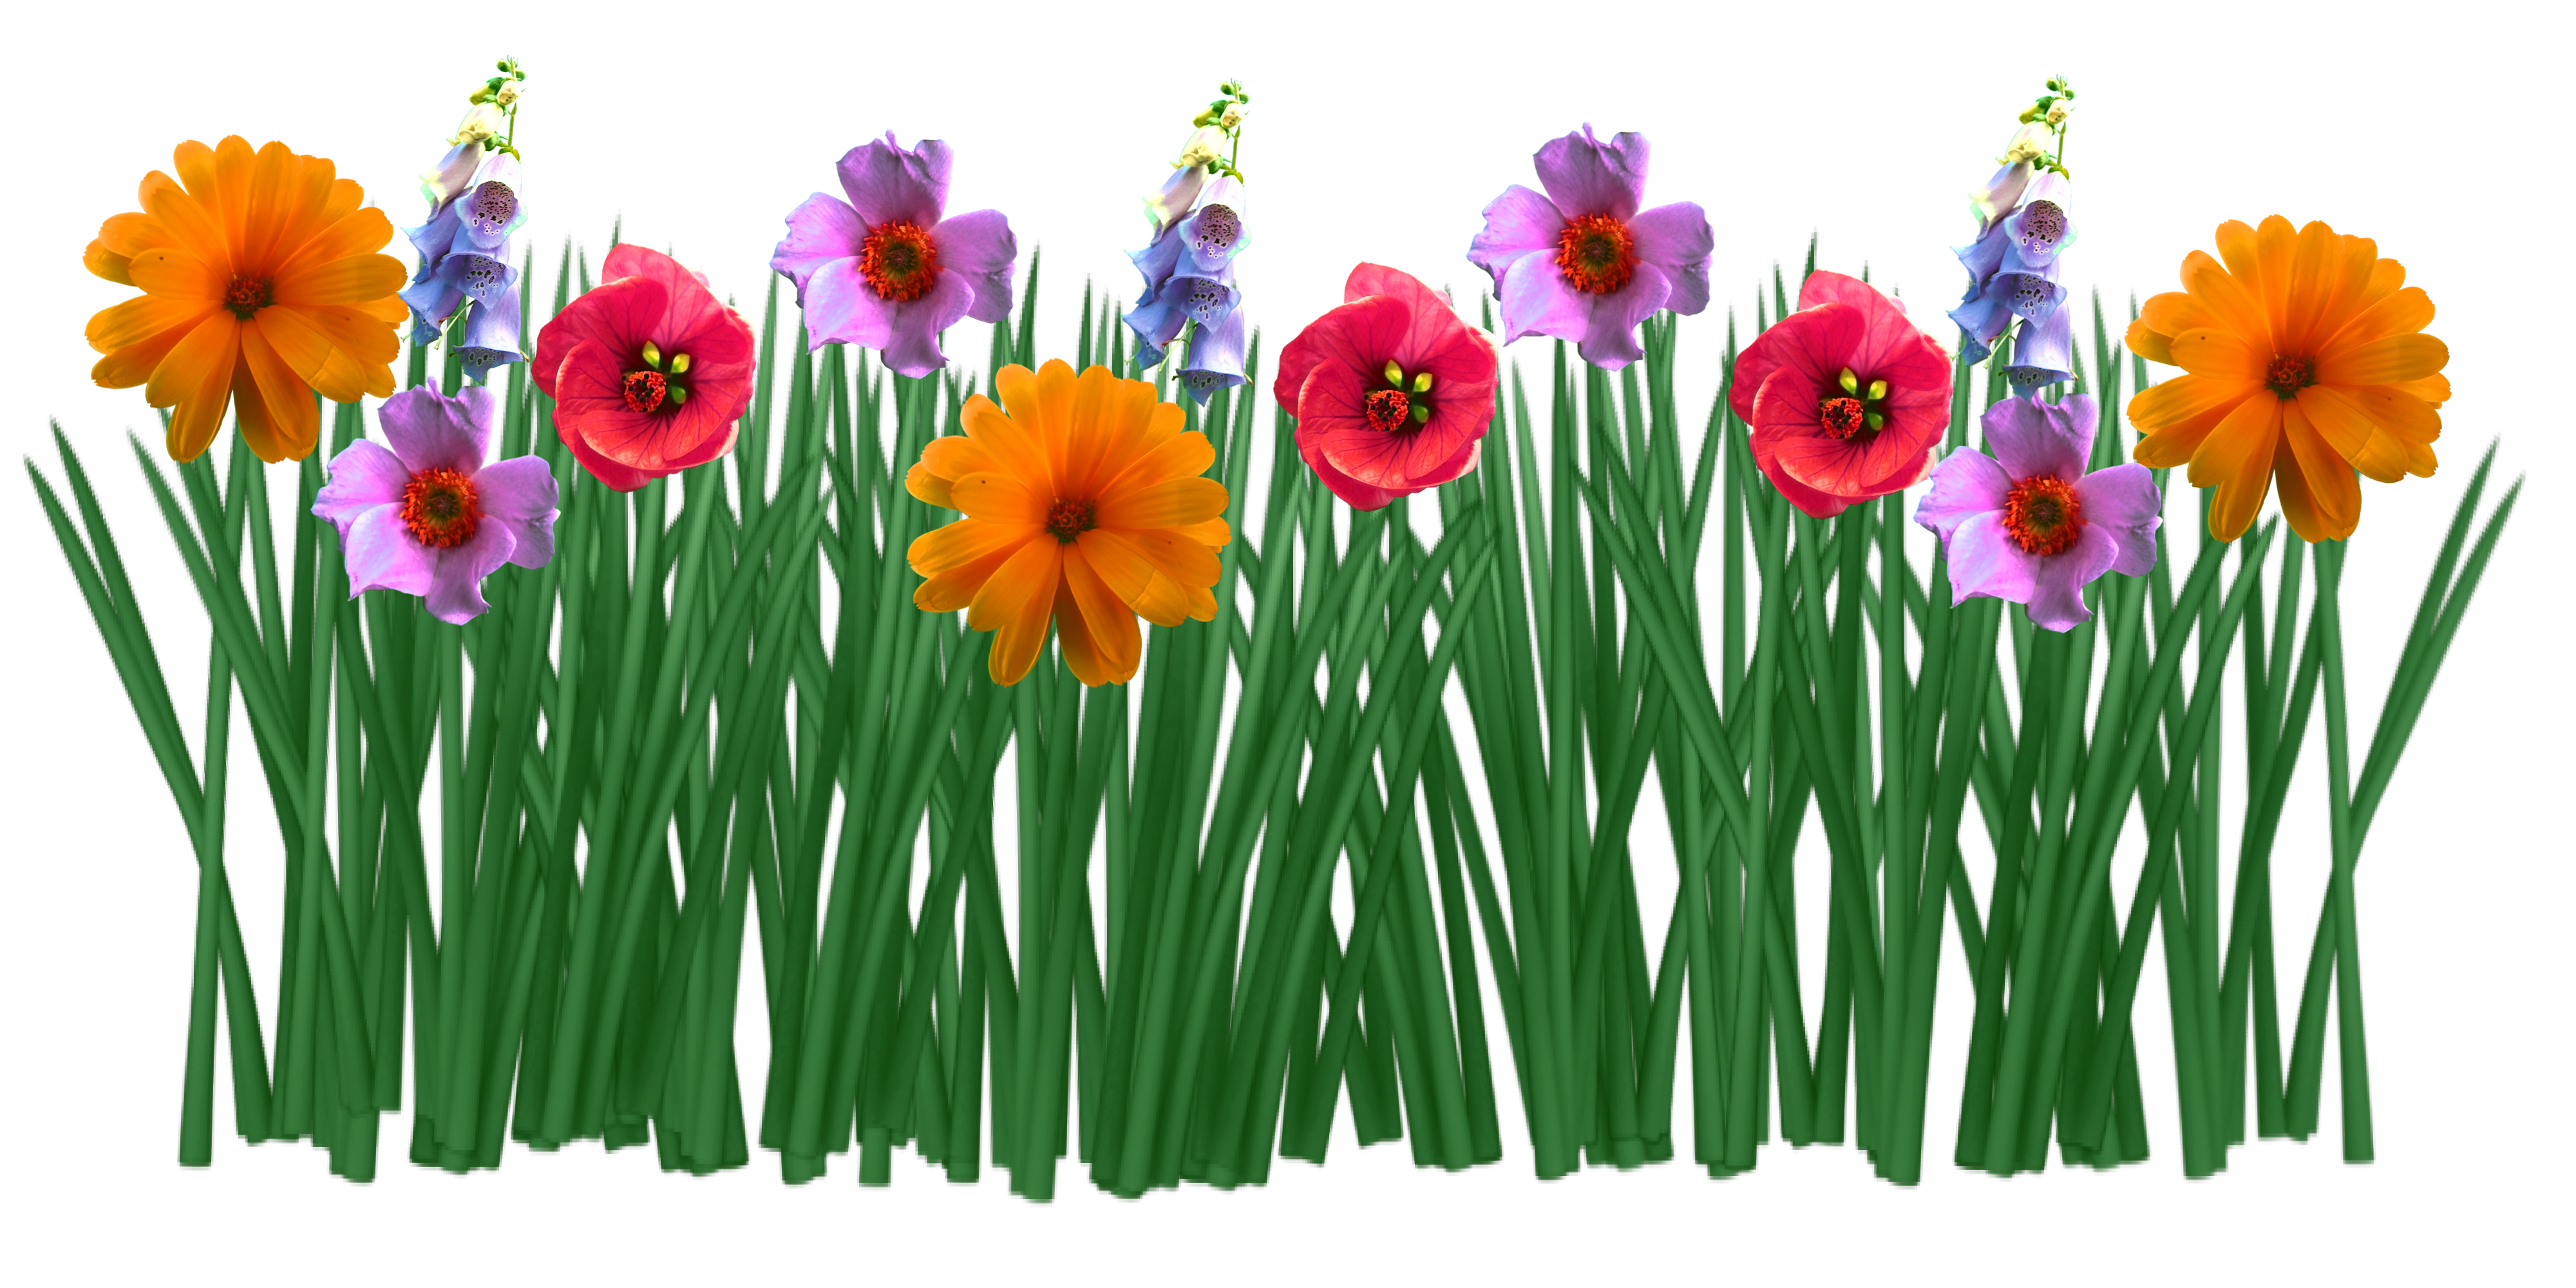 Colorful Spring Flowers Grass Drawing Free Image